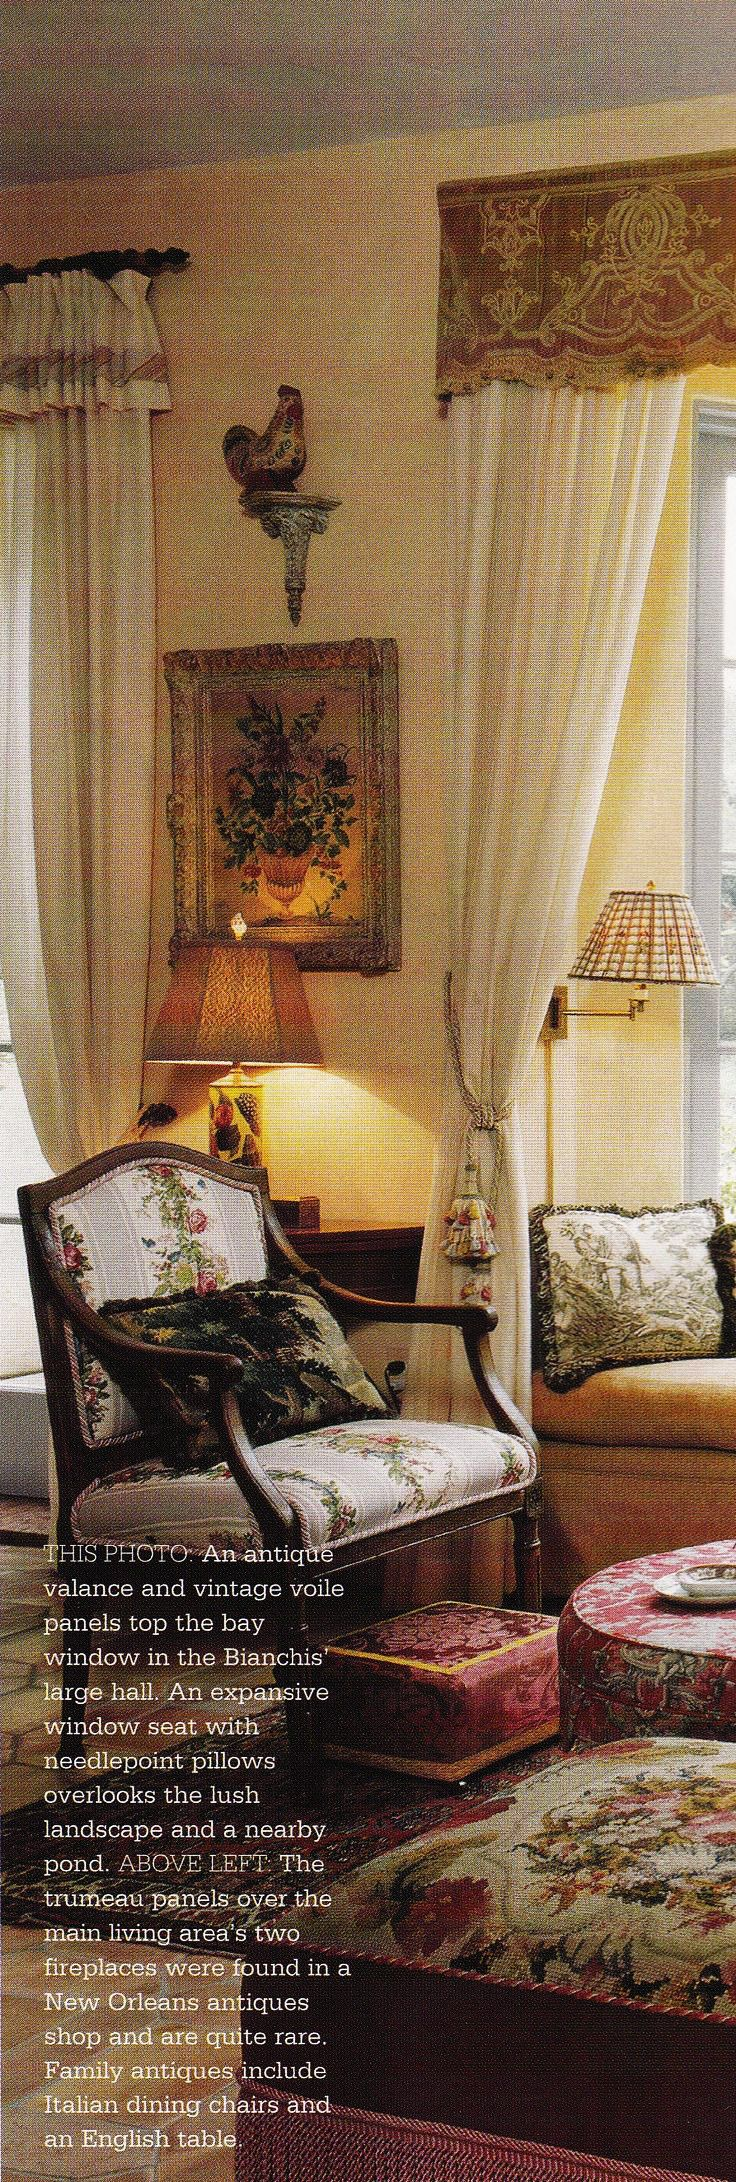 Country French Decorating By Better Homes & Gardens